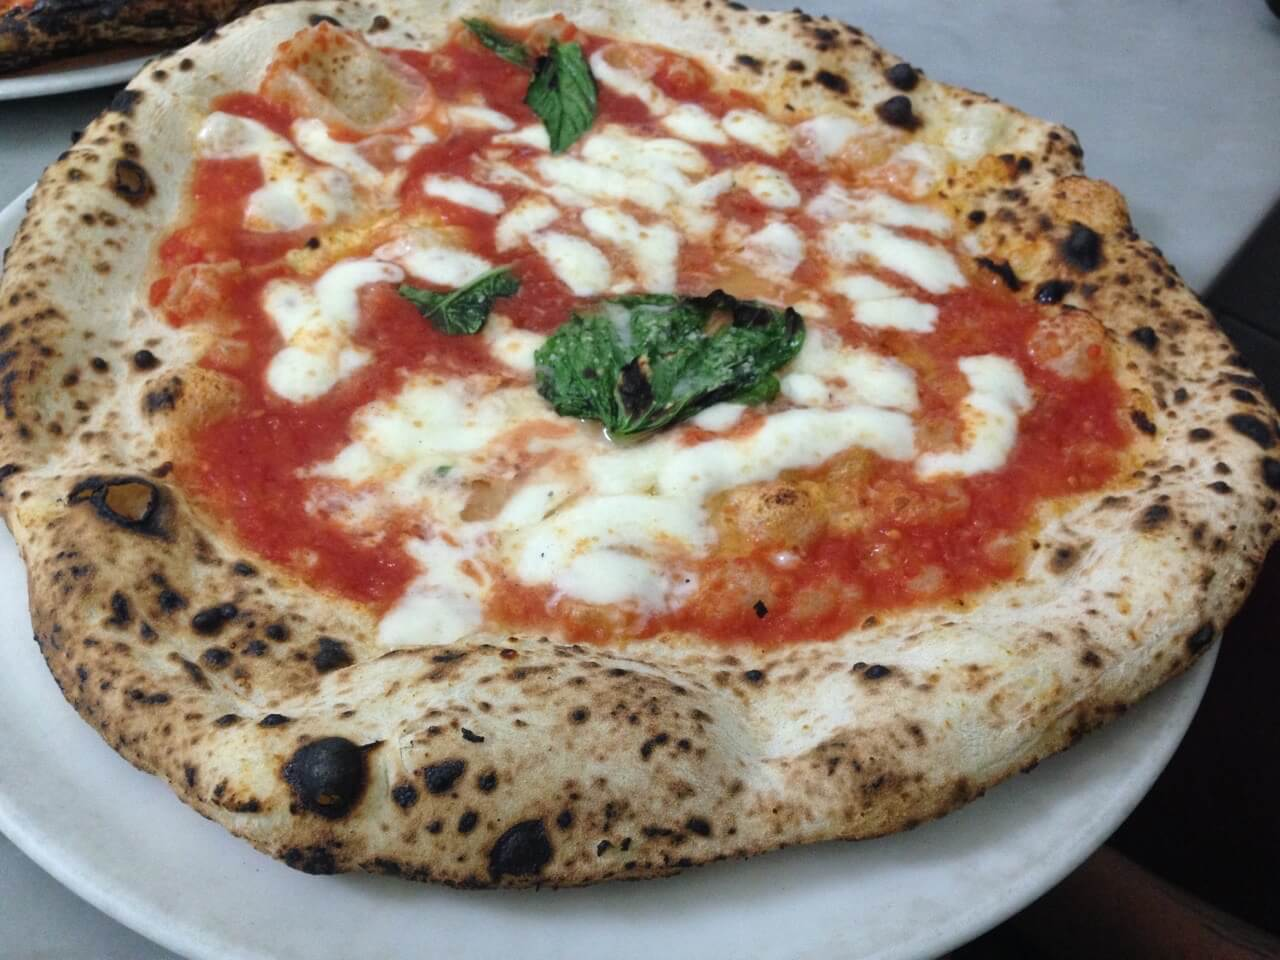 Margherita Pizza from L'Antica Pizzeria da Michele in Naples.